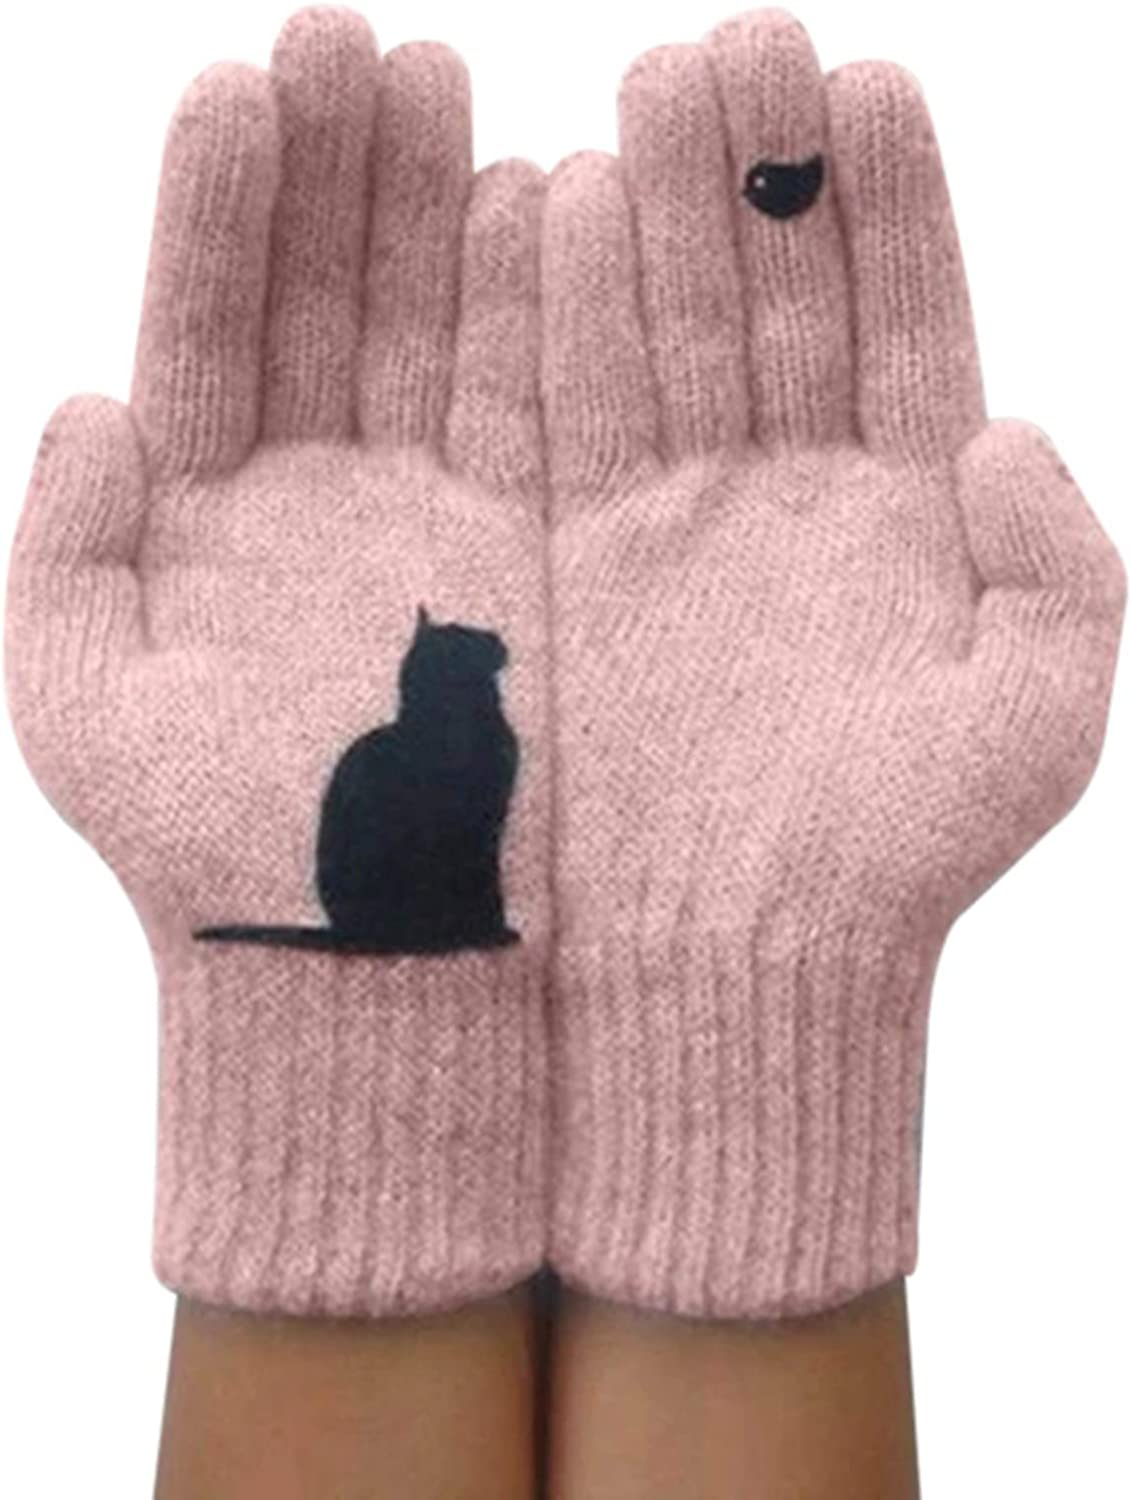 MSKJ Cat Gloves for Women Woolen Gloves Autumn Winter Outdoor Warm Cold Protection Padded Cat Printed Gloves